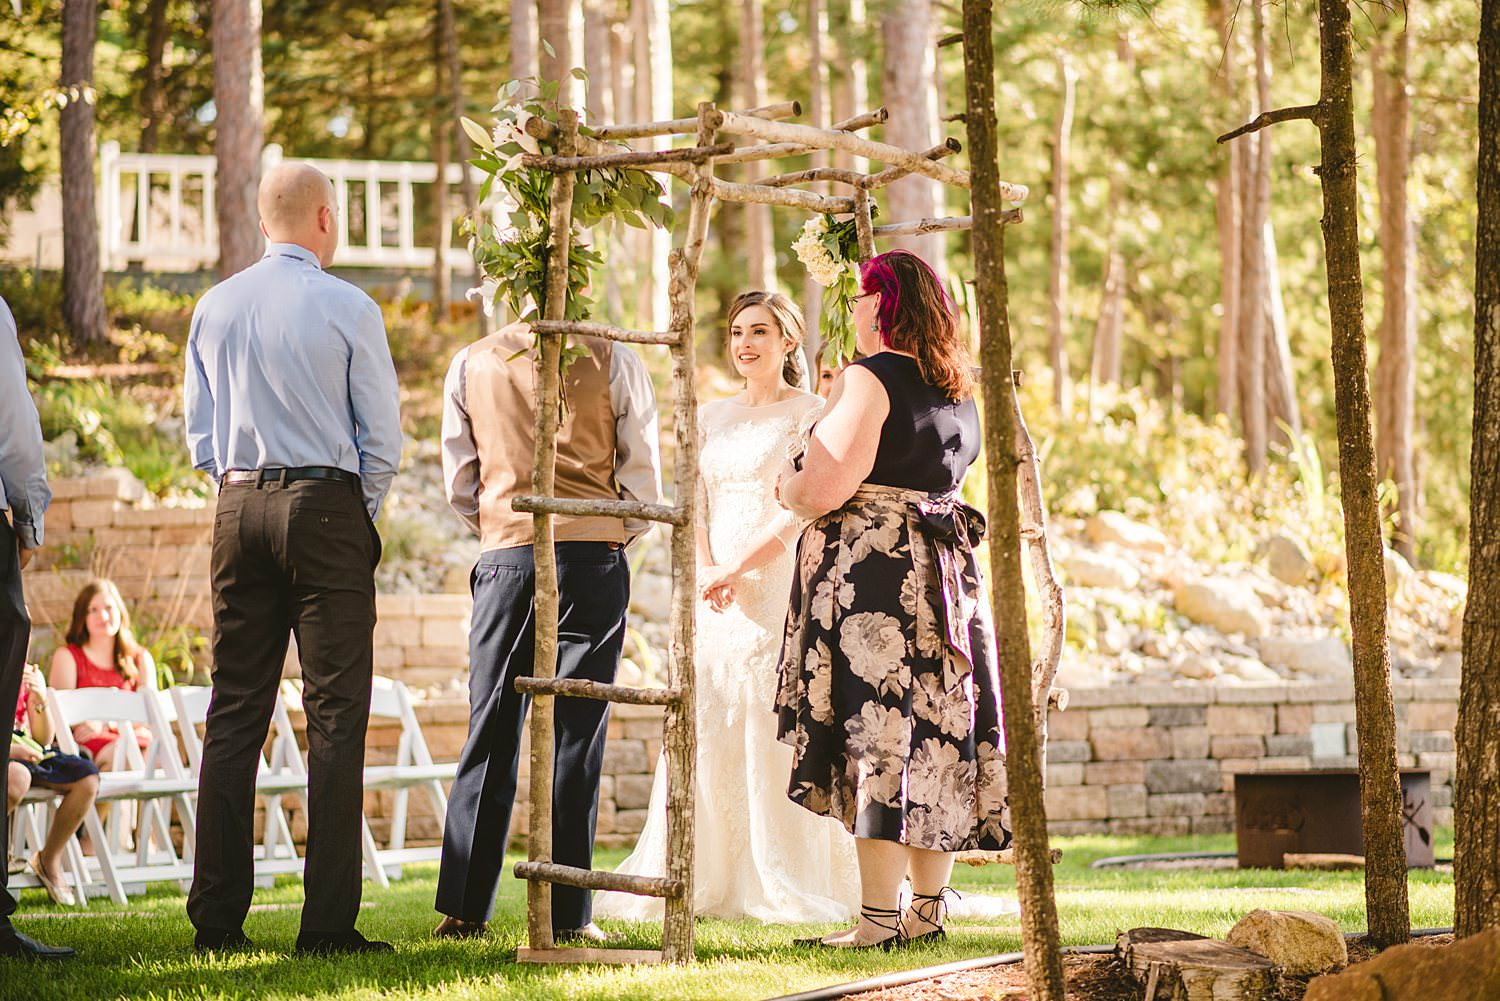 Northern Michigan Nature Backyard Elopement Intimate Wedding 62.jpg